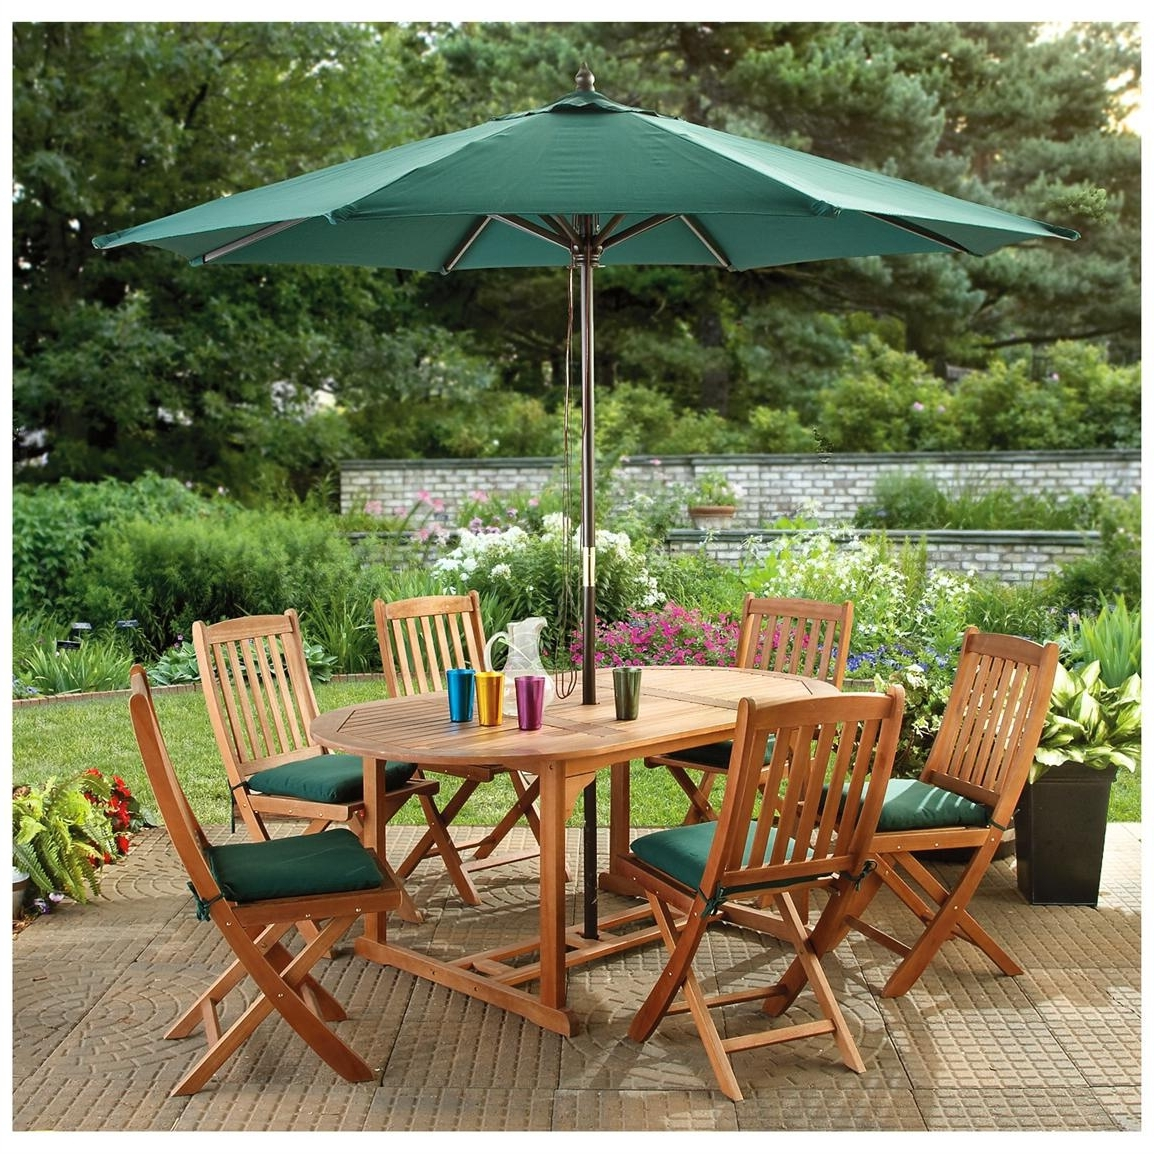 Fashionable The Patio Table Umbrella For Comfort Gathering — Mistikcamping Home With Free Standing Umbrellas For Patio (View 5 of 20)